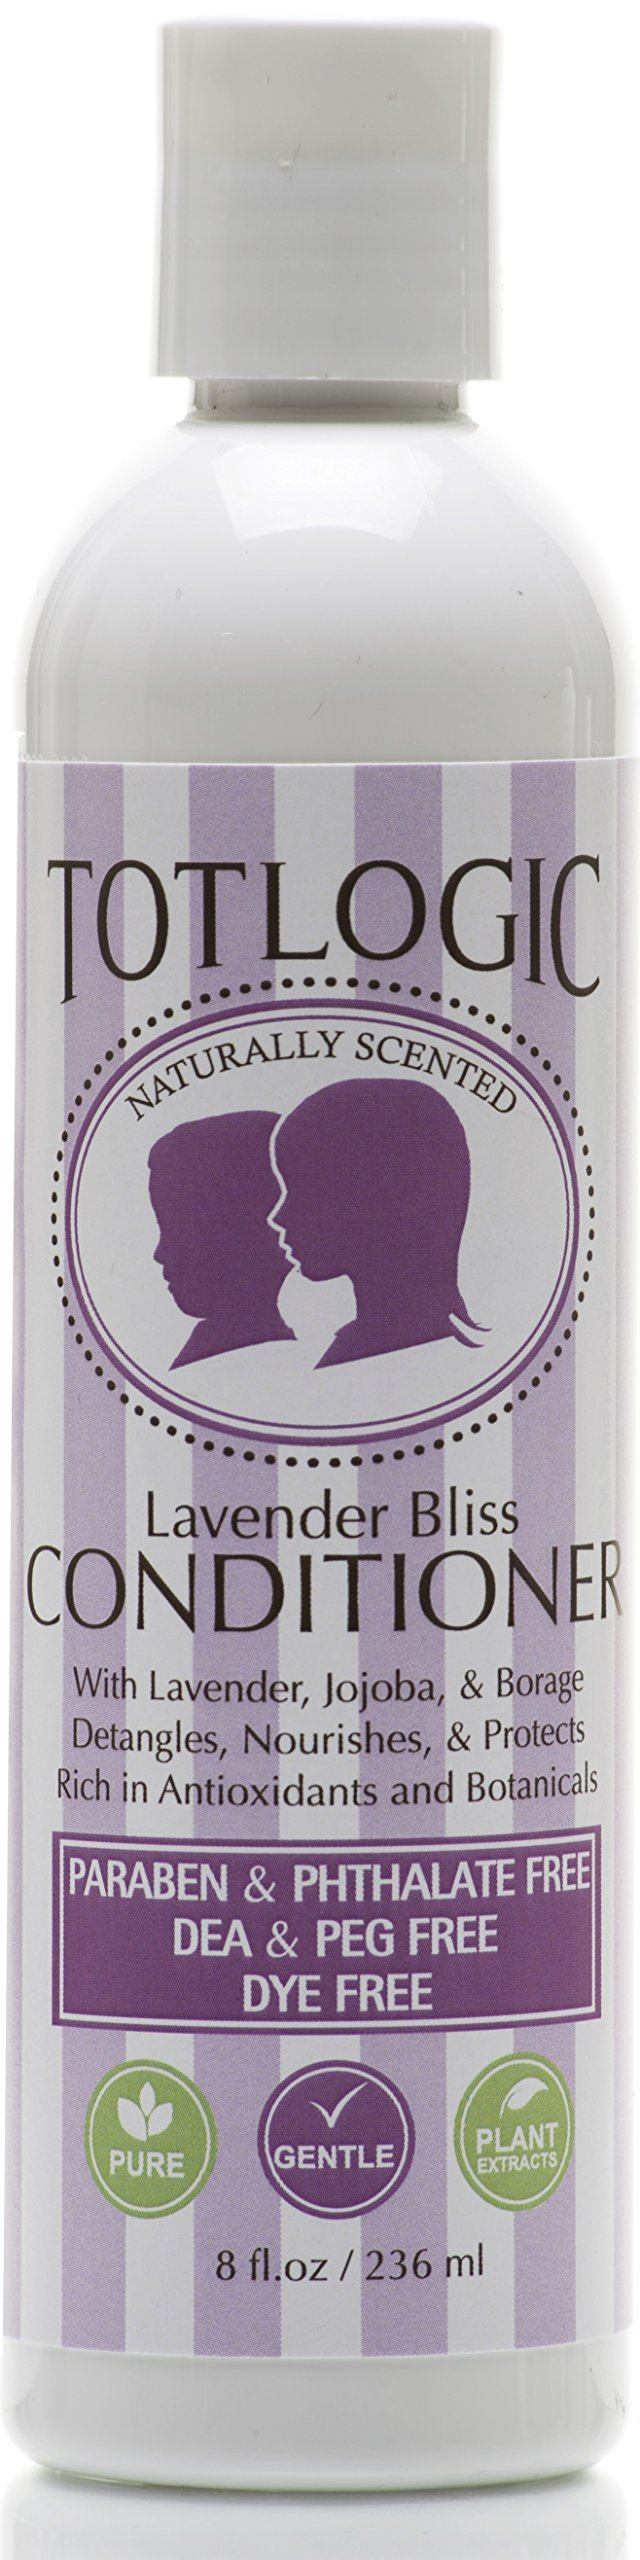 TotLogic Kids & Baby Safe Conditioner - 8 oz , Lavender Bliss, Infused with Natural Jojoba Oil and Rich in Antioxidants, No Phthalates, No Parabens, No Sulfates, DEA and PEG Free,